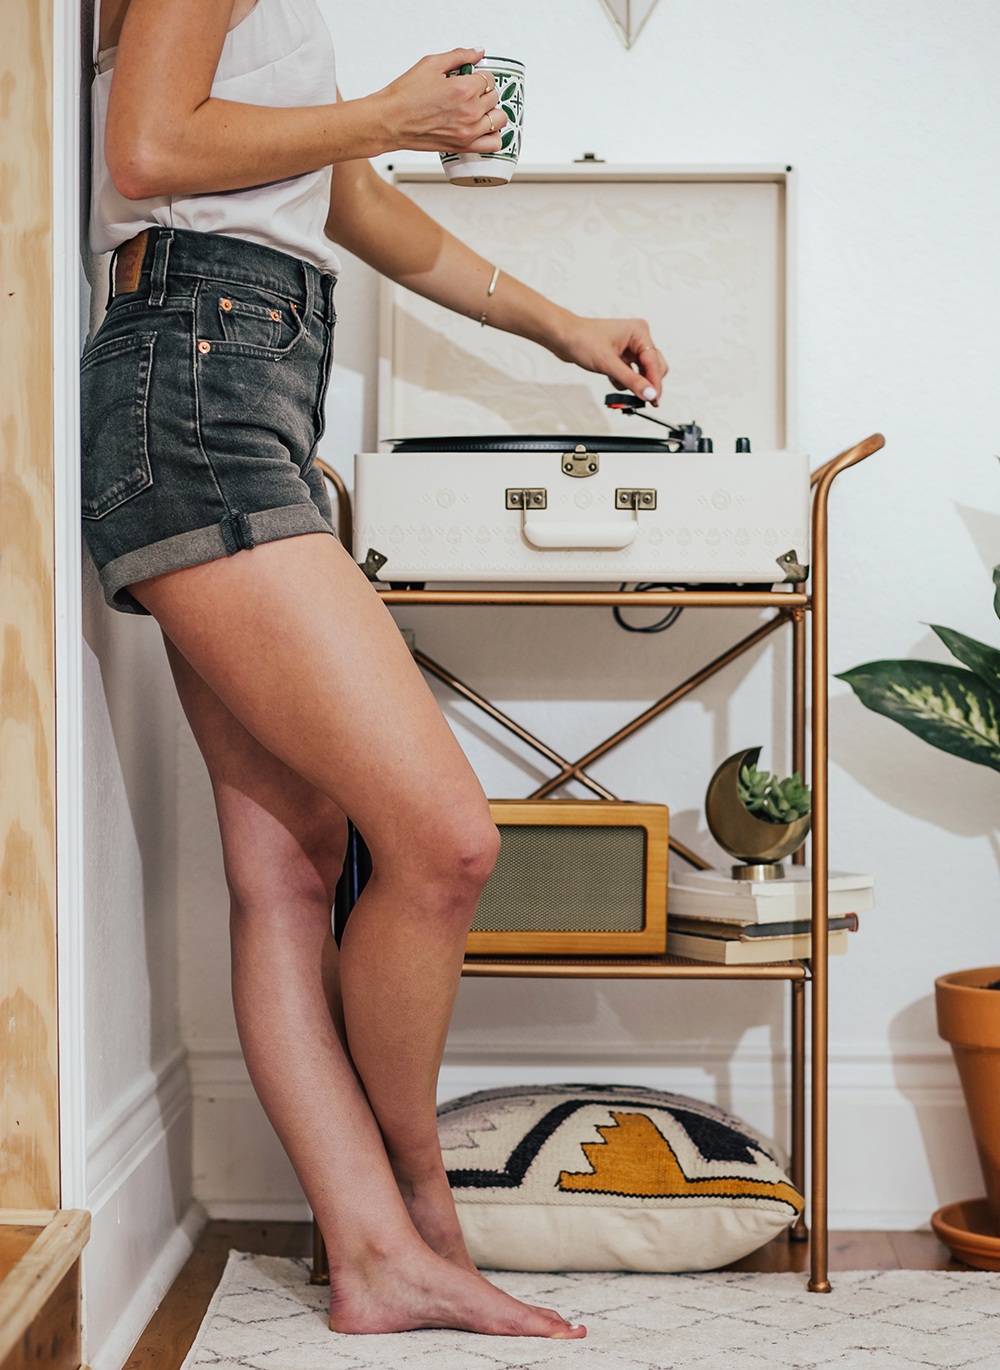 livvyland-blog-olivia-watson-austin-texas-fashion-blogger-urban-outfitters-record-player-nook-room-setup-holder-interior-boho-style-levis-wedgie-shorts-1